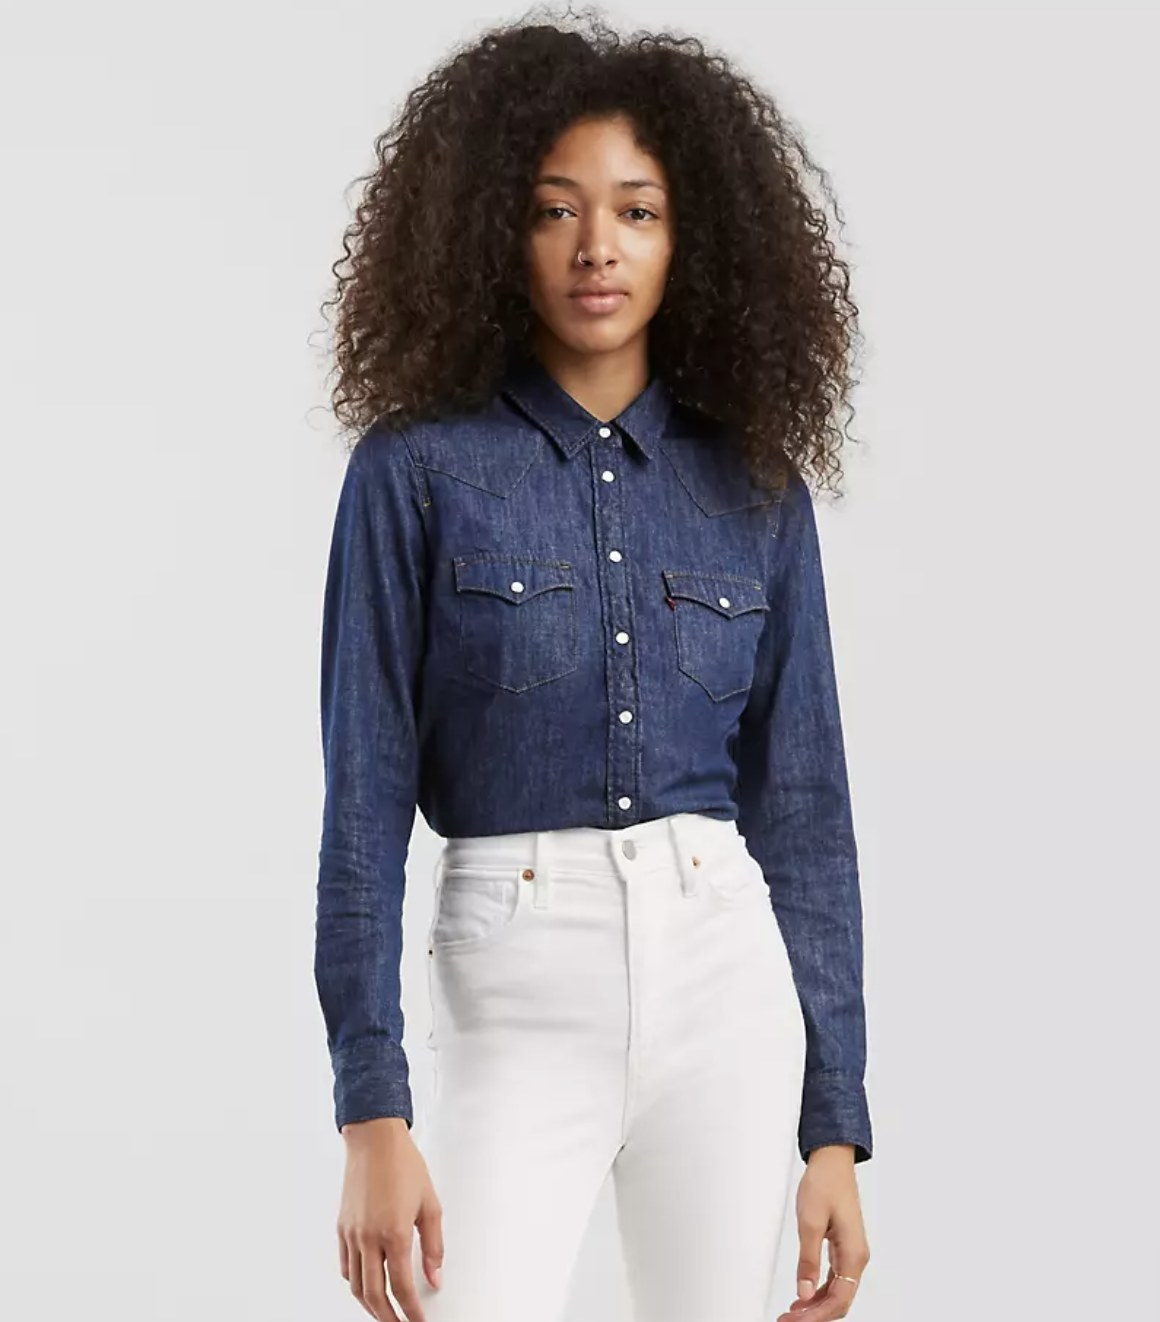 Model is wearing white jeans and a dark blue denim shirt